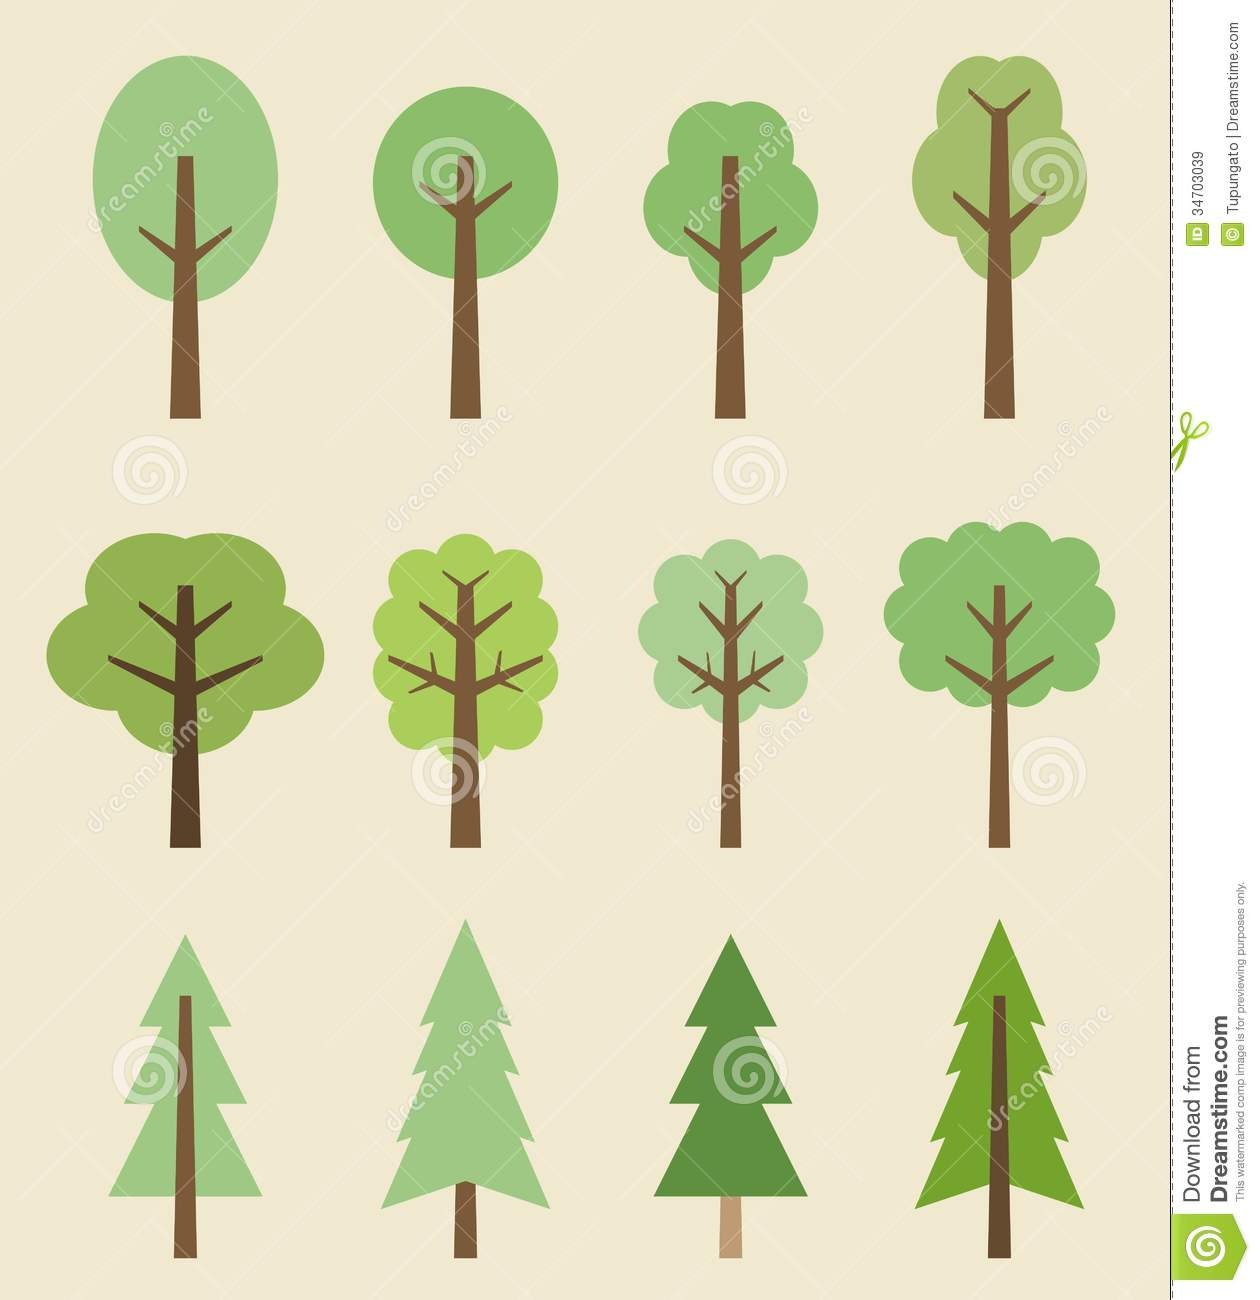 Tree Icon Set   Cute Trees Cartoon Illustration. Nature Collection. image #1549